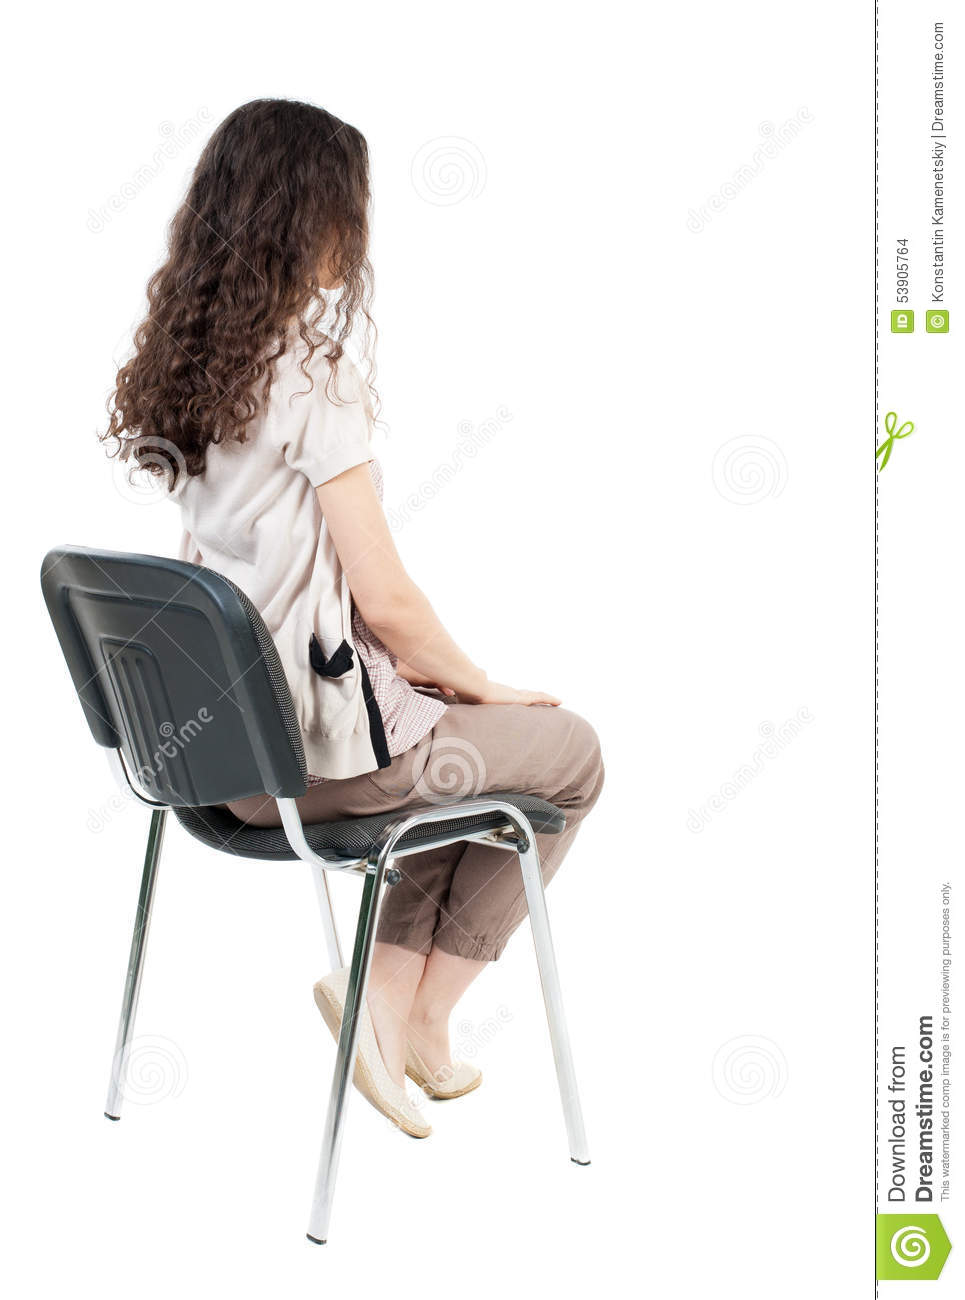 Man sitting in chair side - Back Background Backside Beautiful Chair Girl Isolated People Person Rear Sitting